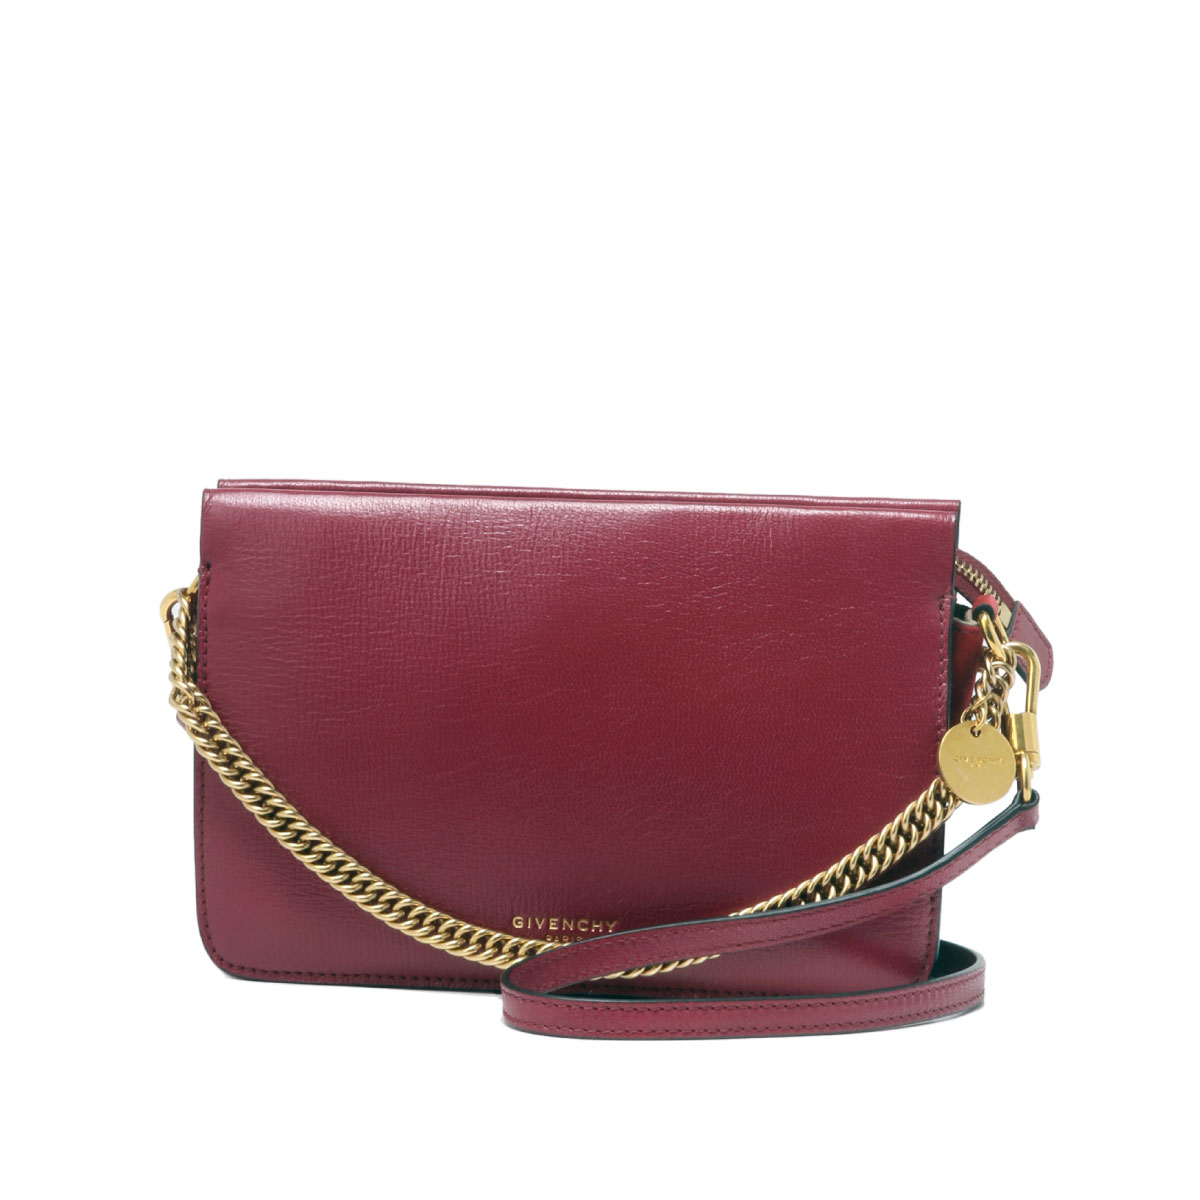 4732435975e3 ... Cherry Red Belonging. Importdouble Givenchy Bag Lady Bb501jb07l 654  Shoulder